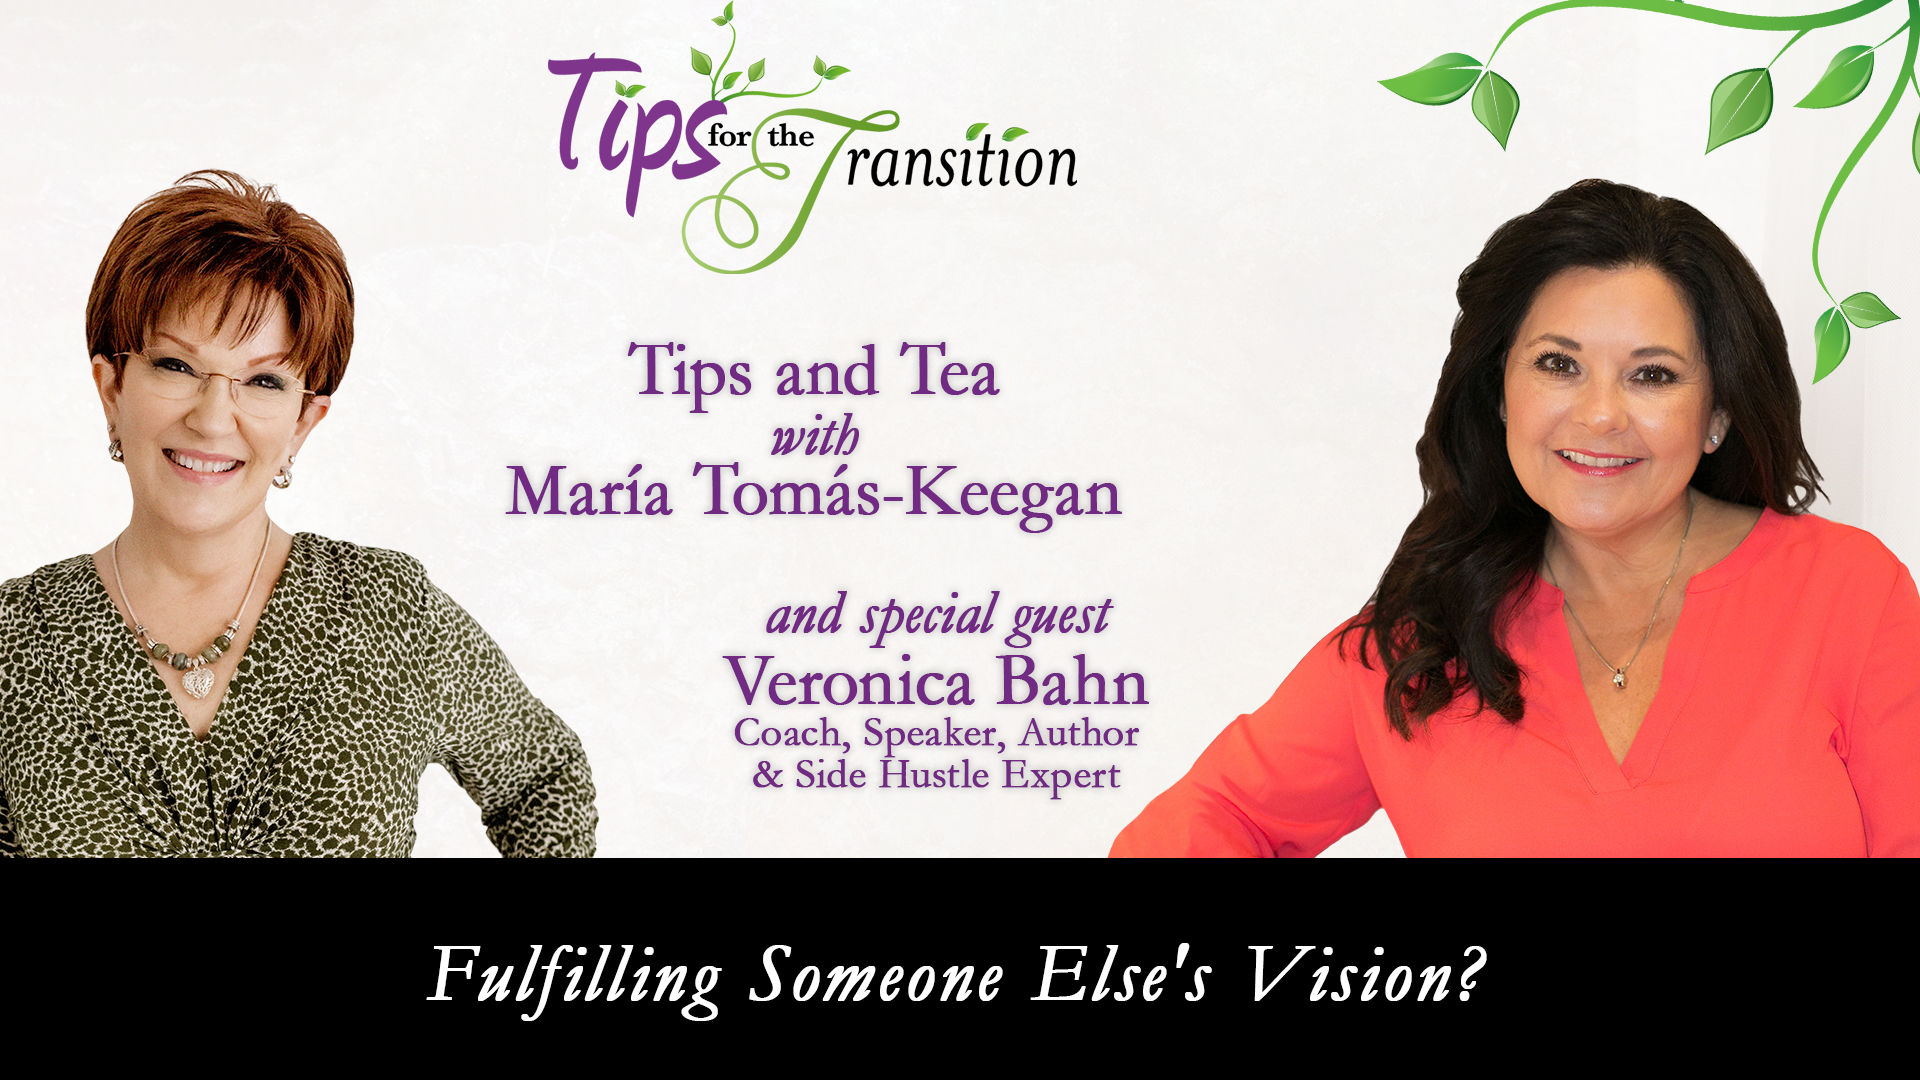 Are You Fulfilling Someone Else's Vision?